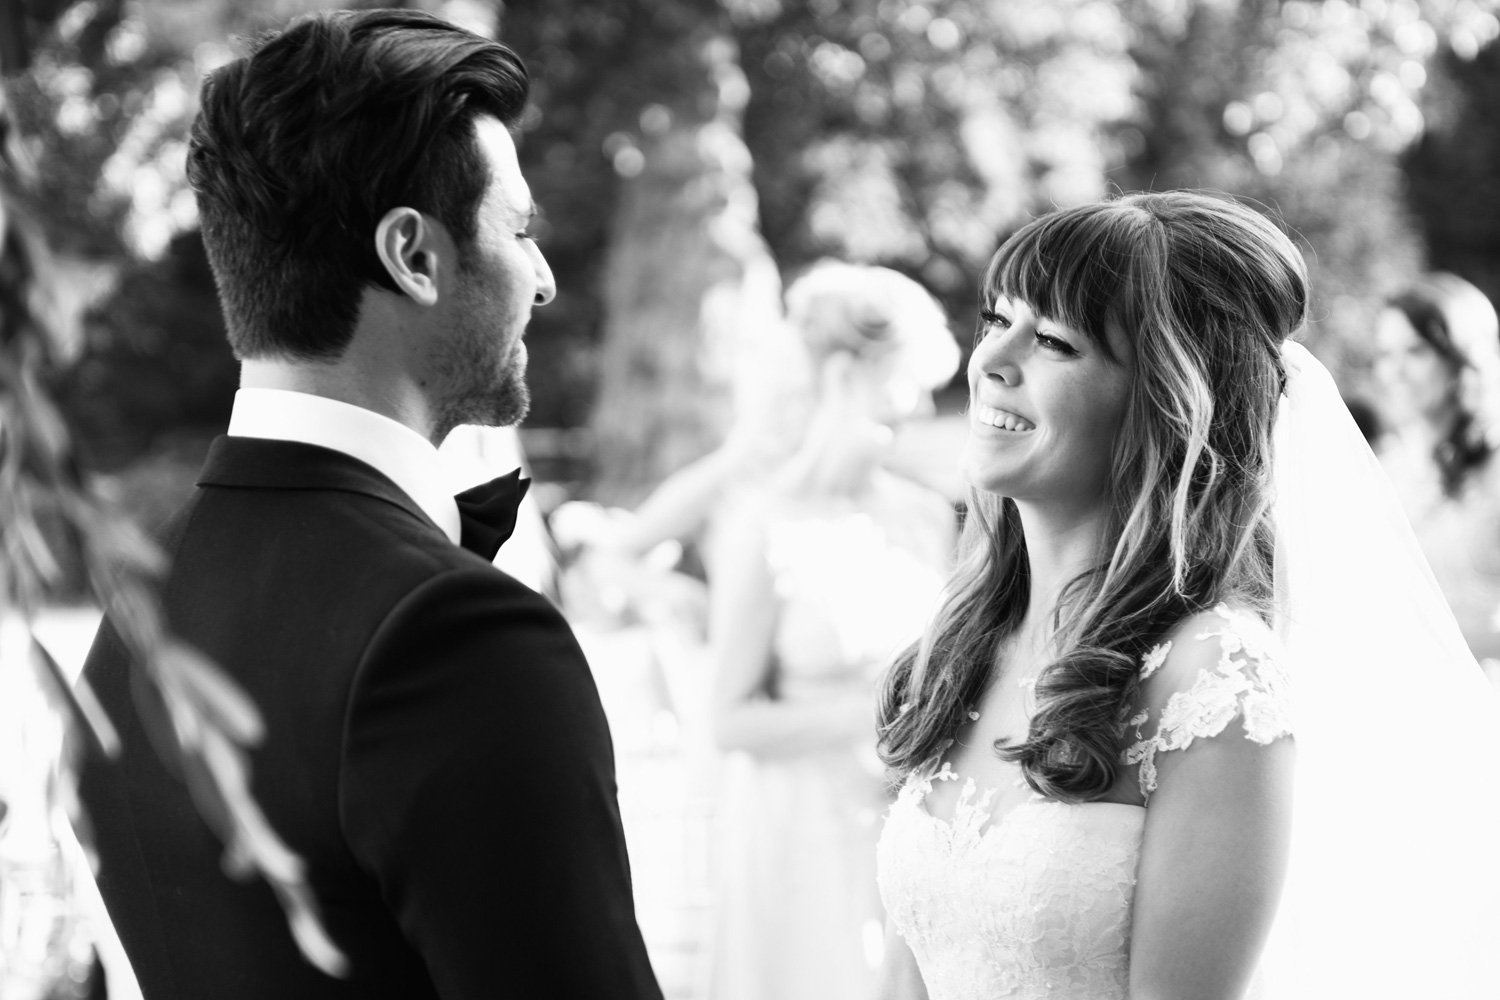 146-katie-mitchell-chateau-wedding-paris-france.jpg